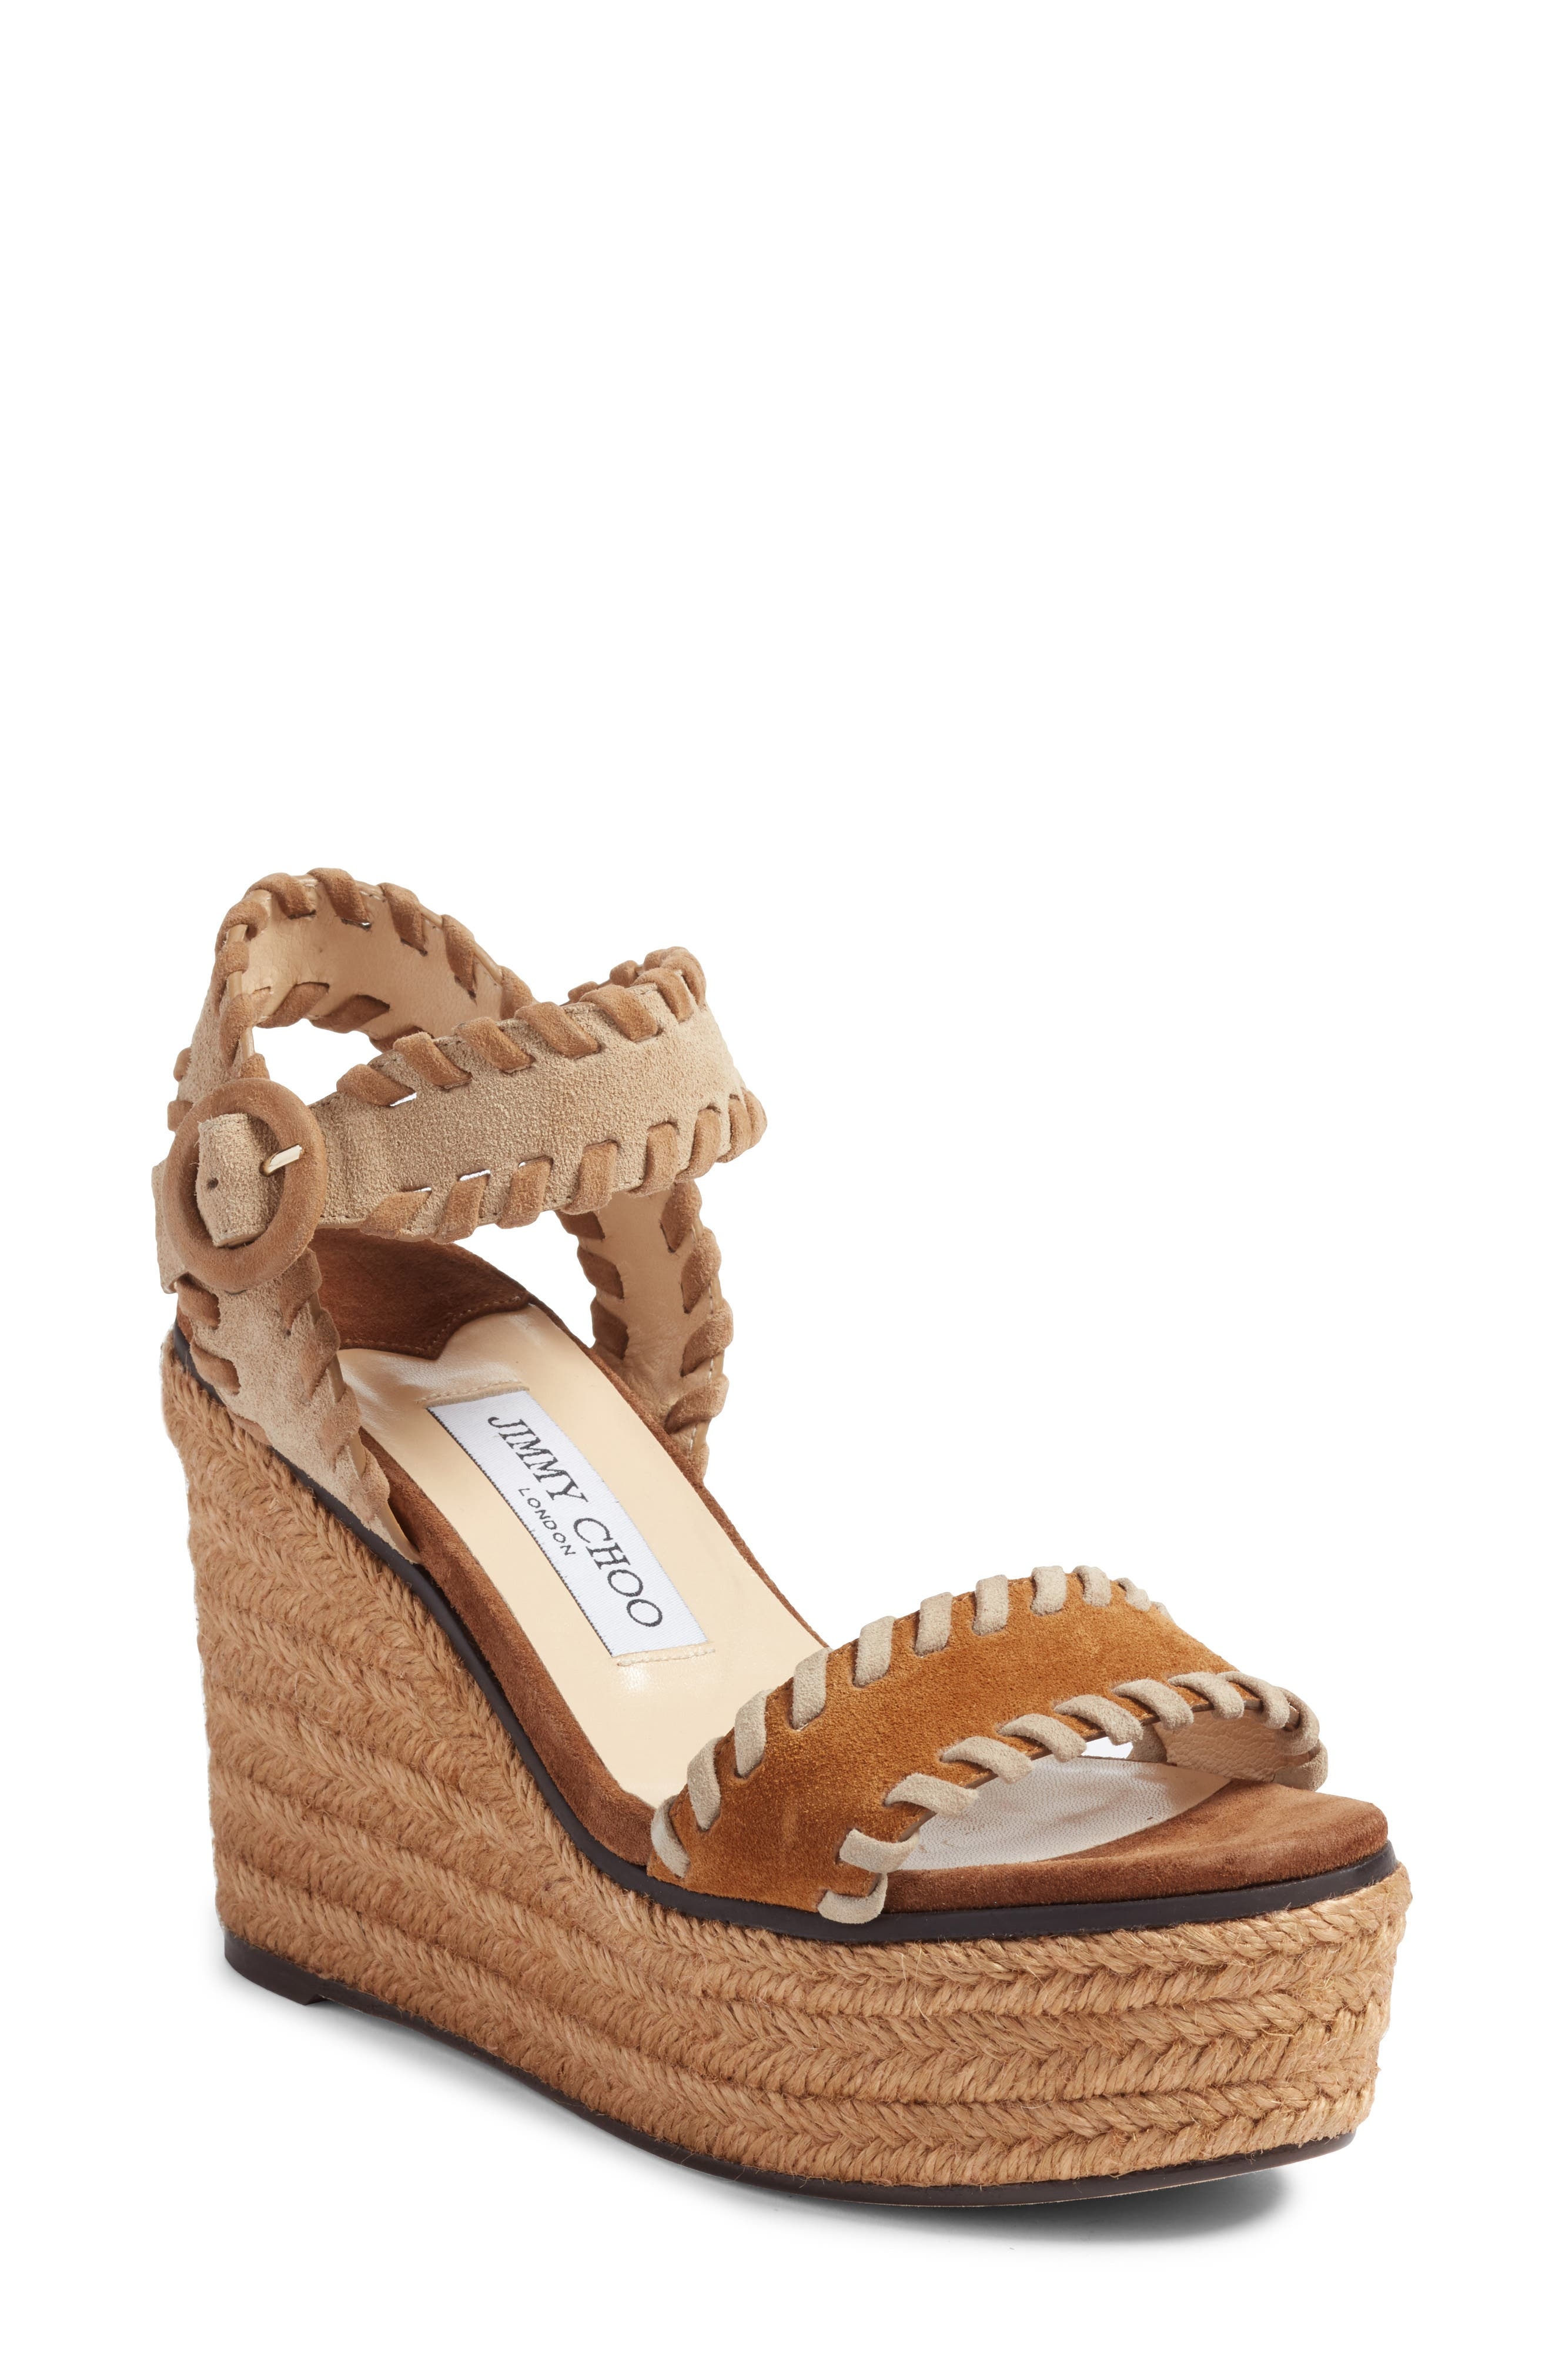 JIMMY CHOO, Abigail Whipstitch Wedge, Main thumbnail 1, color, NATURAL/ BROWN